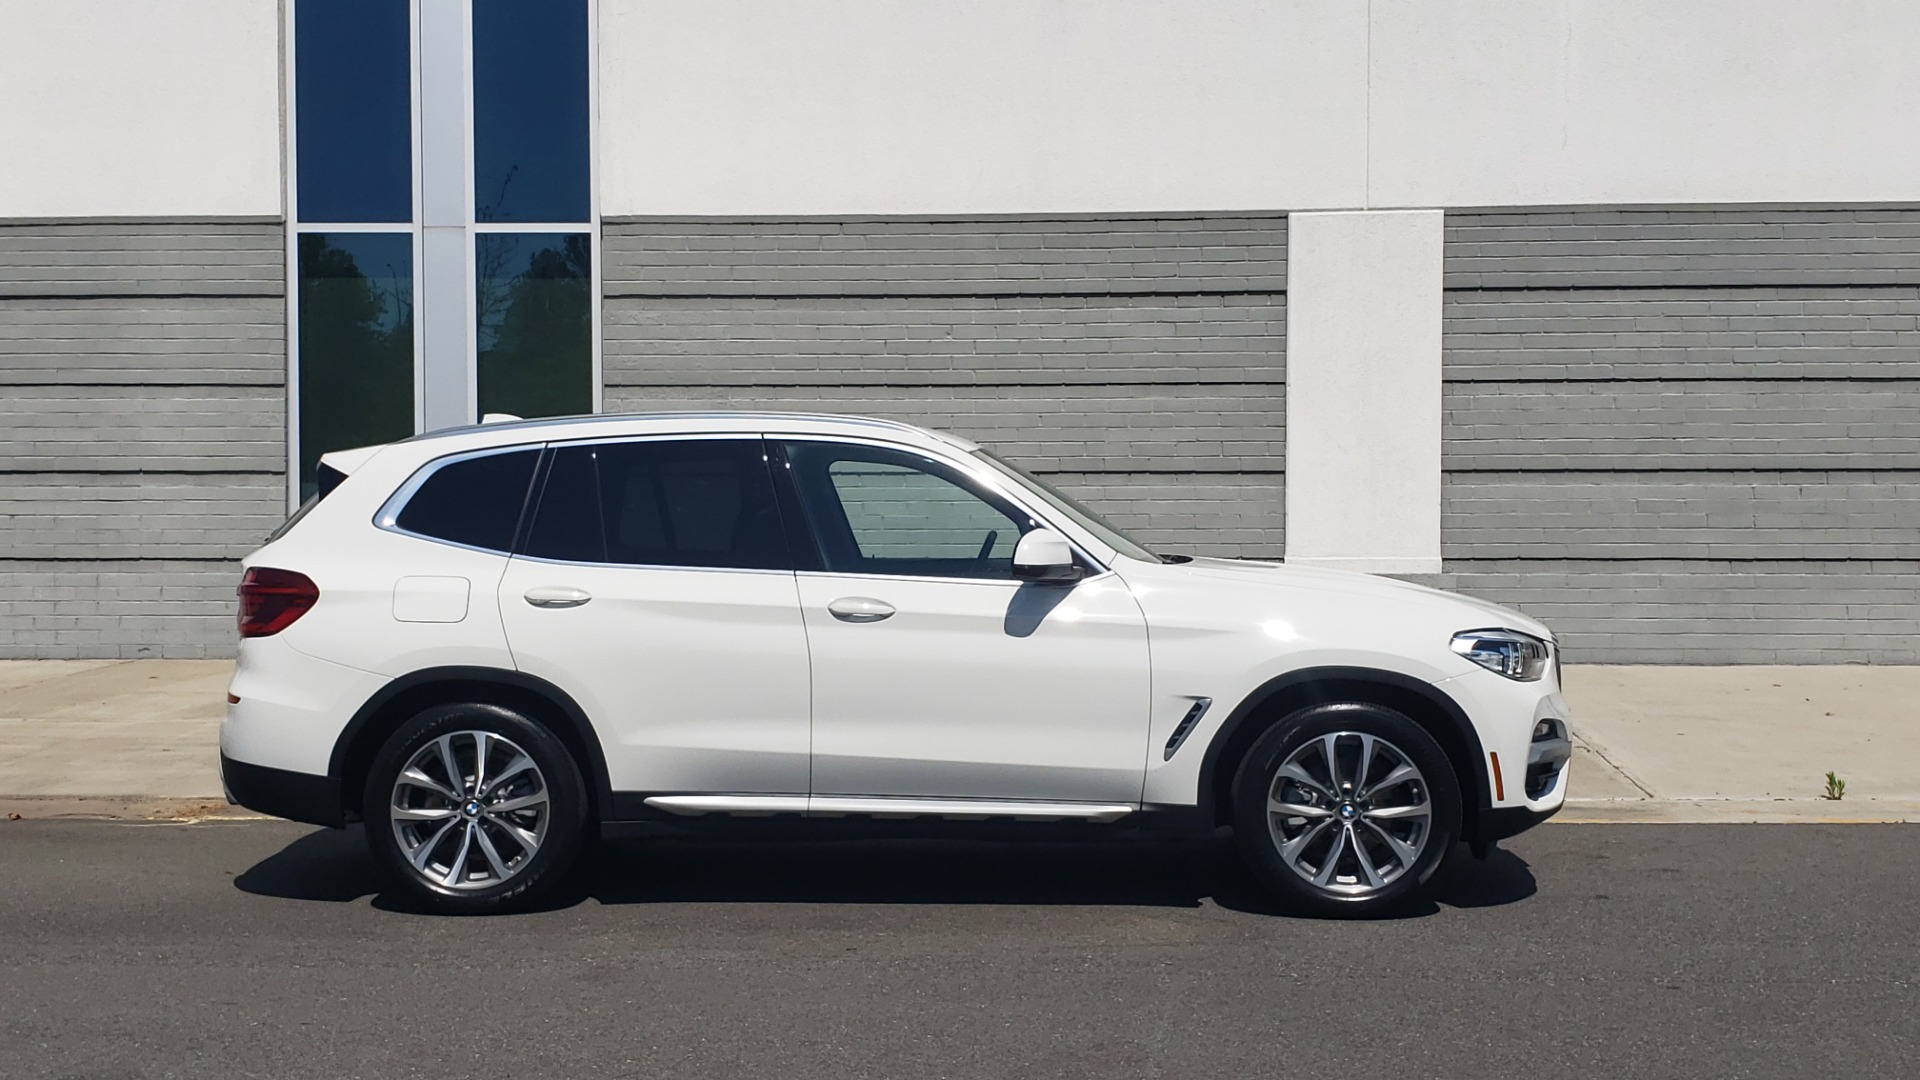 Used 2018 BMW X3 XDRIVE30I / CONV PKG / PANO-ROOF / HTD STS / REARVIEW for sale $33,995 at Formula Imports in Charlotte NC 28227 7